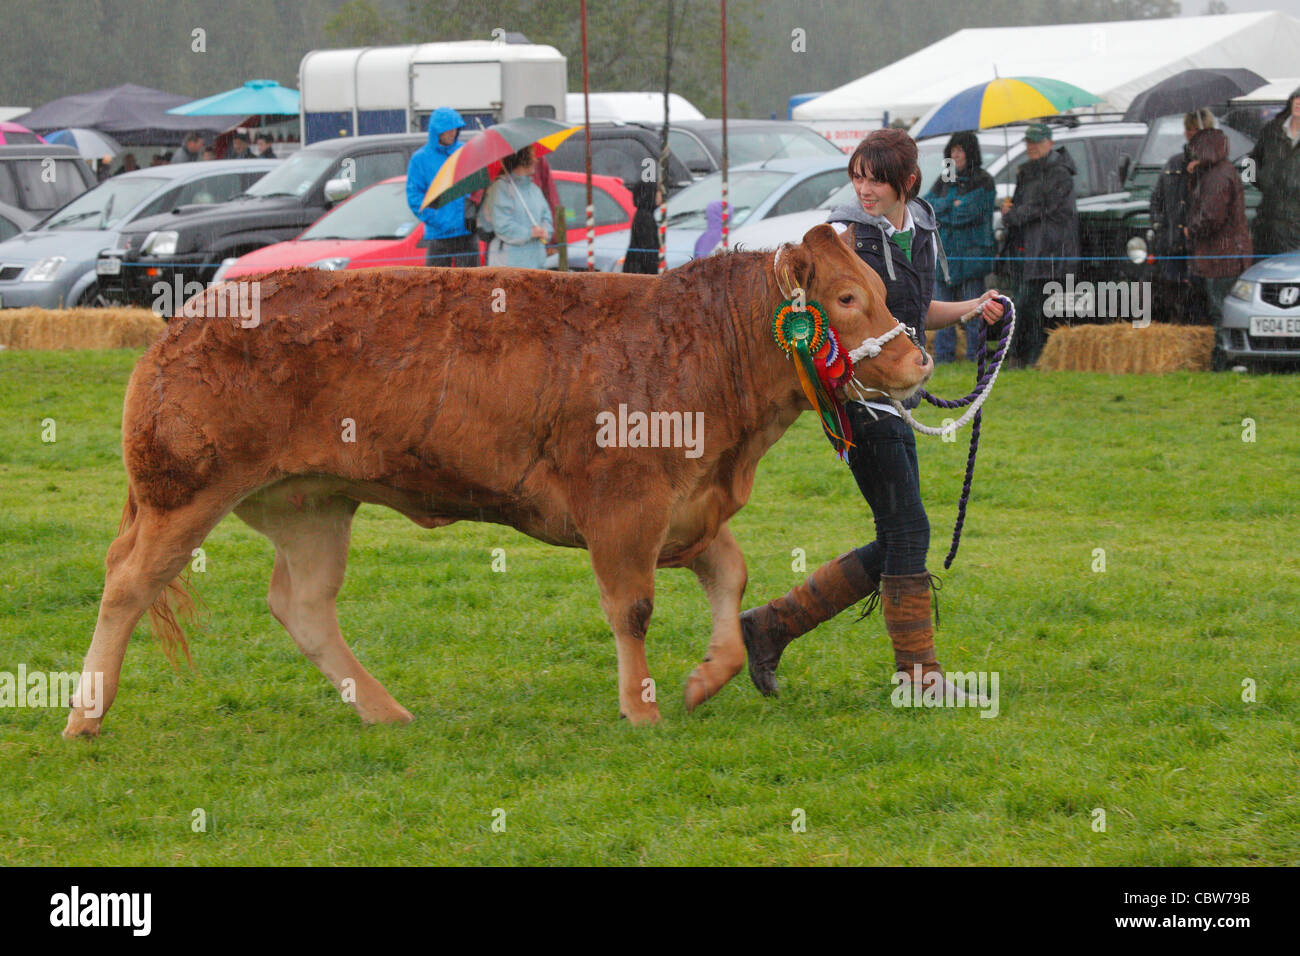 Limousin bullock being lead by girl at Hesket Newmarket Agricultural Society Show near Calbeck in Cumbria, England. - Stock Image